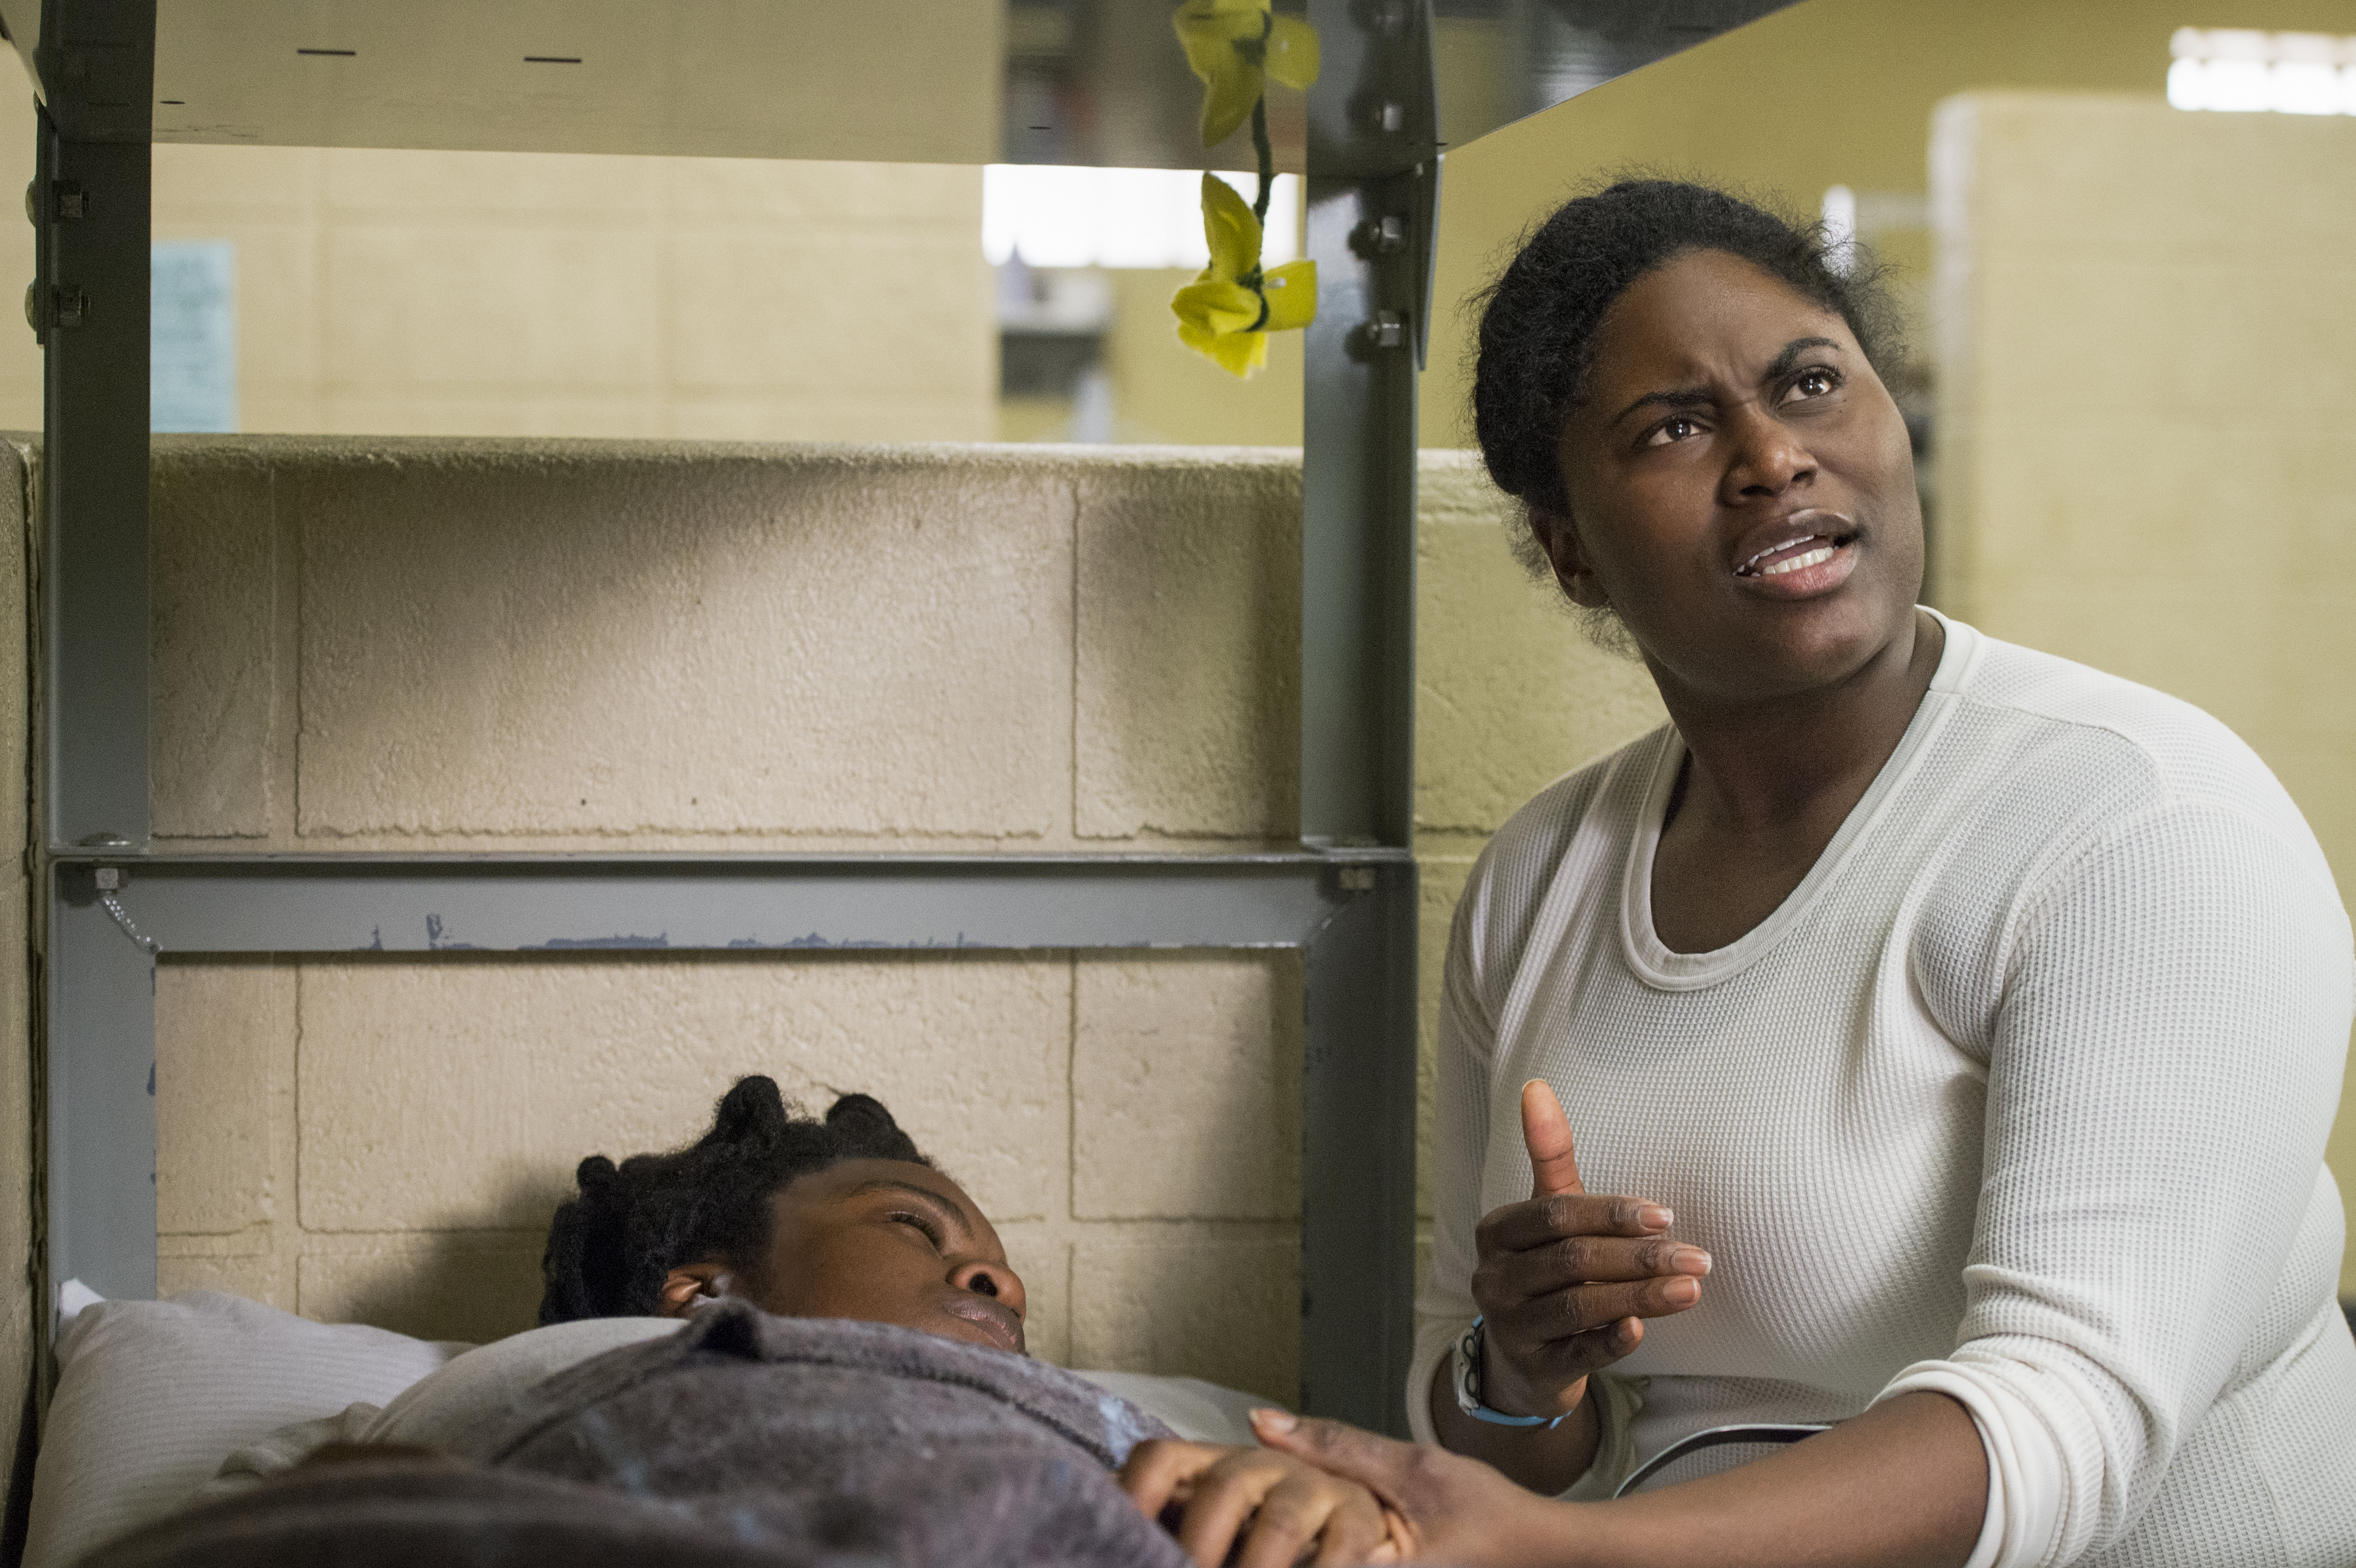 Orange Is the New Black, Suzanne: Screenshot from season five with Taystee looking annoyed as Suzanne lies in bed after being given lithium